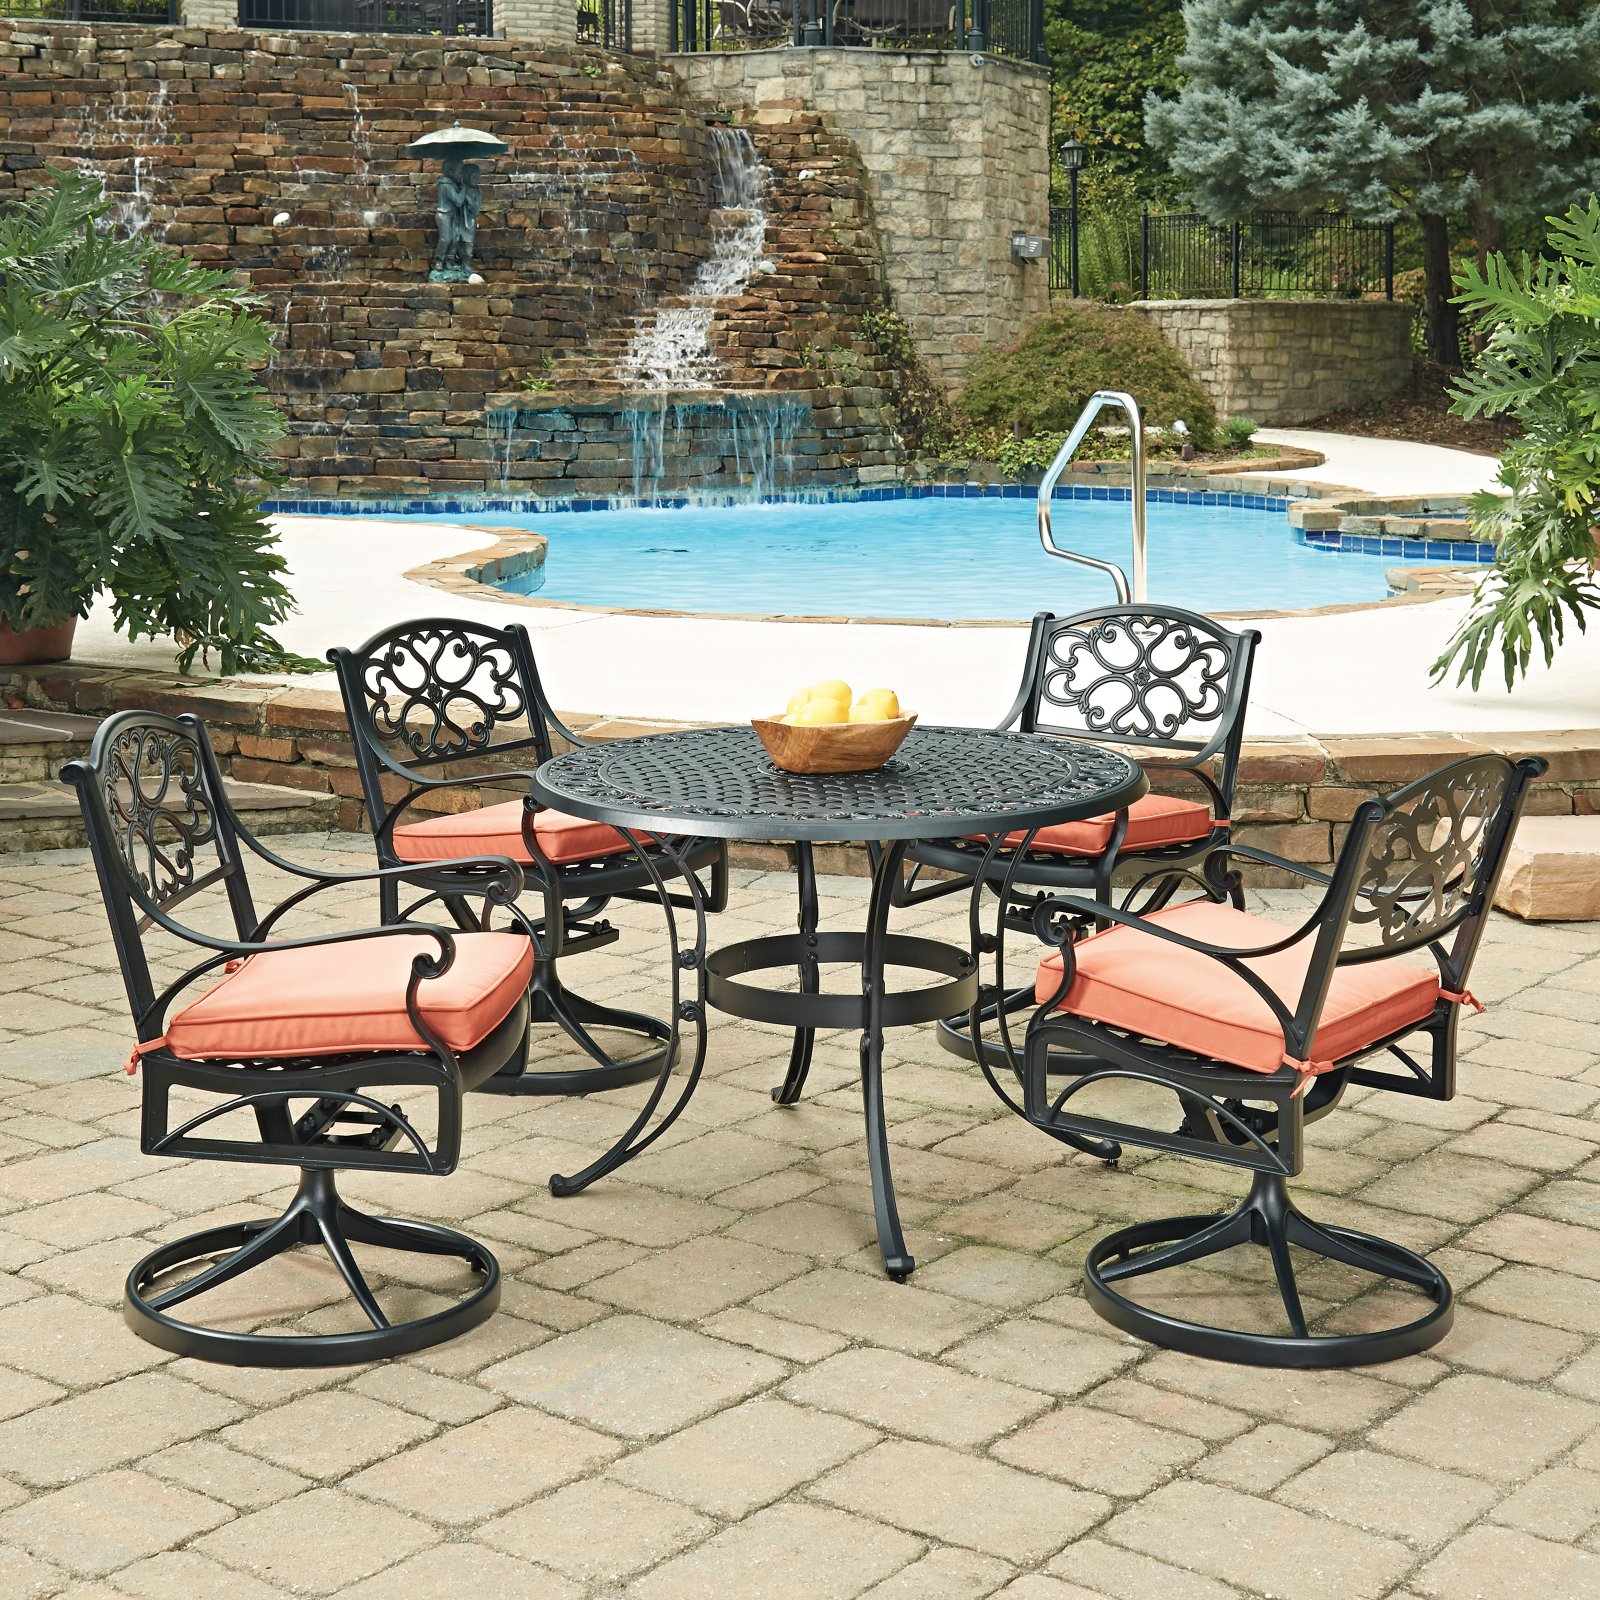 Home Styles Biscayne 42 in. Swivel Patio Dining Room Set Seats 4 by Home Styles